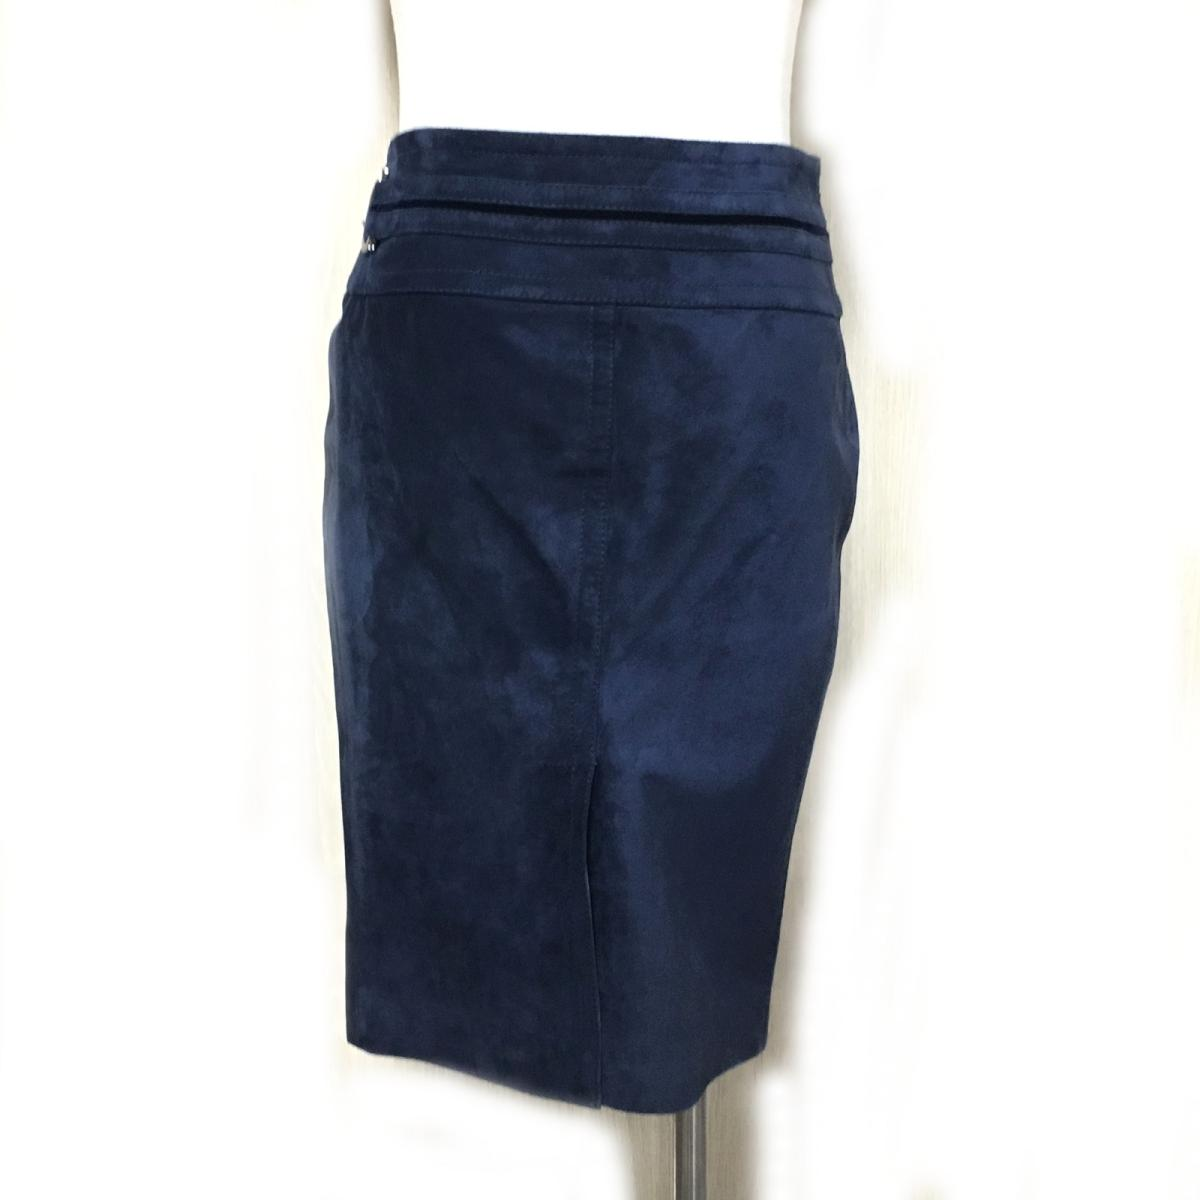 59dd117e2 ... Gucci suede skirt Lady's pig leather | GUCCI BRANDOFF brand off  clothing clothing brand bottom soot ...